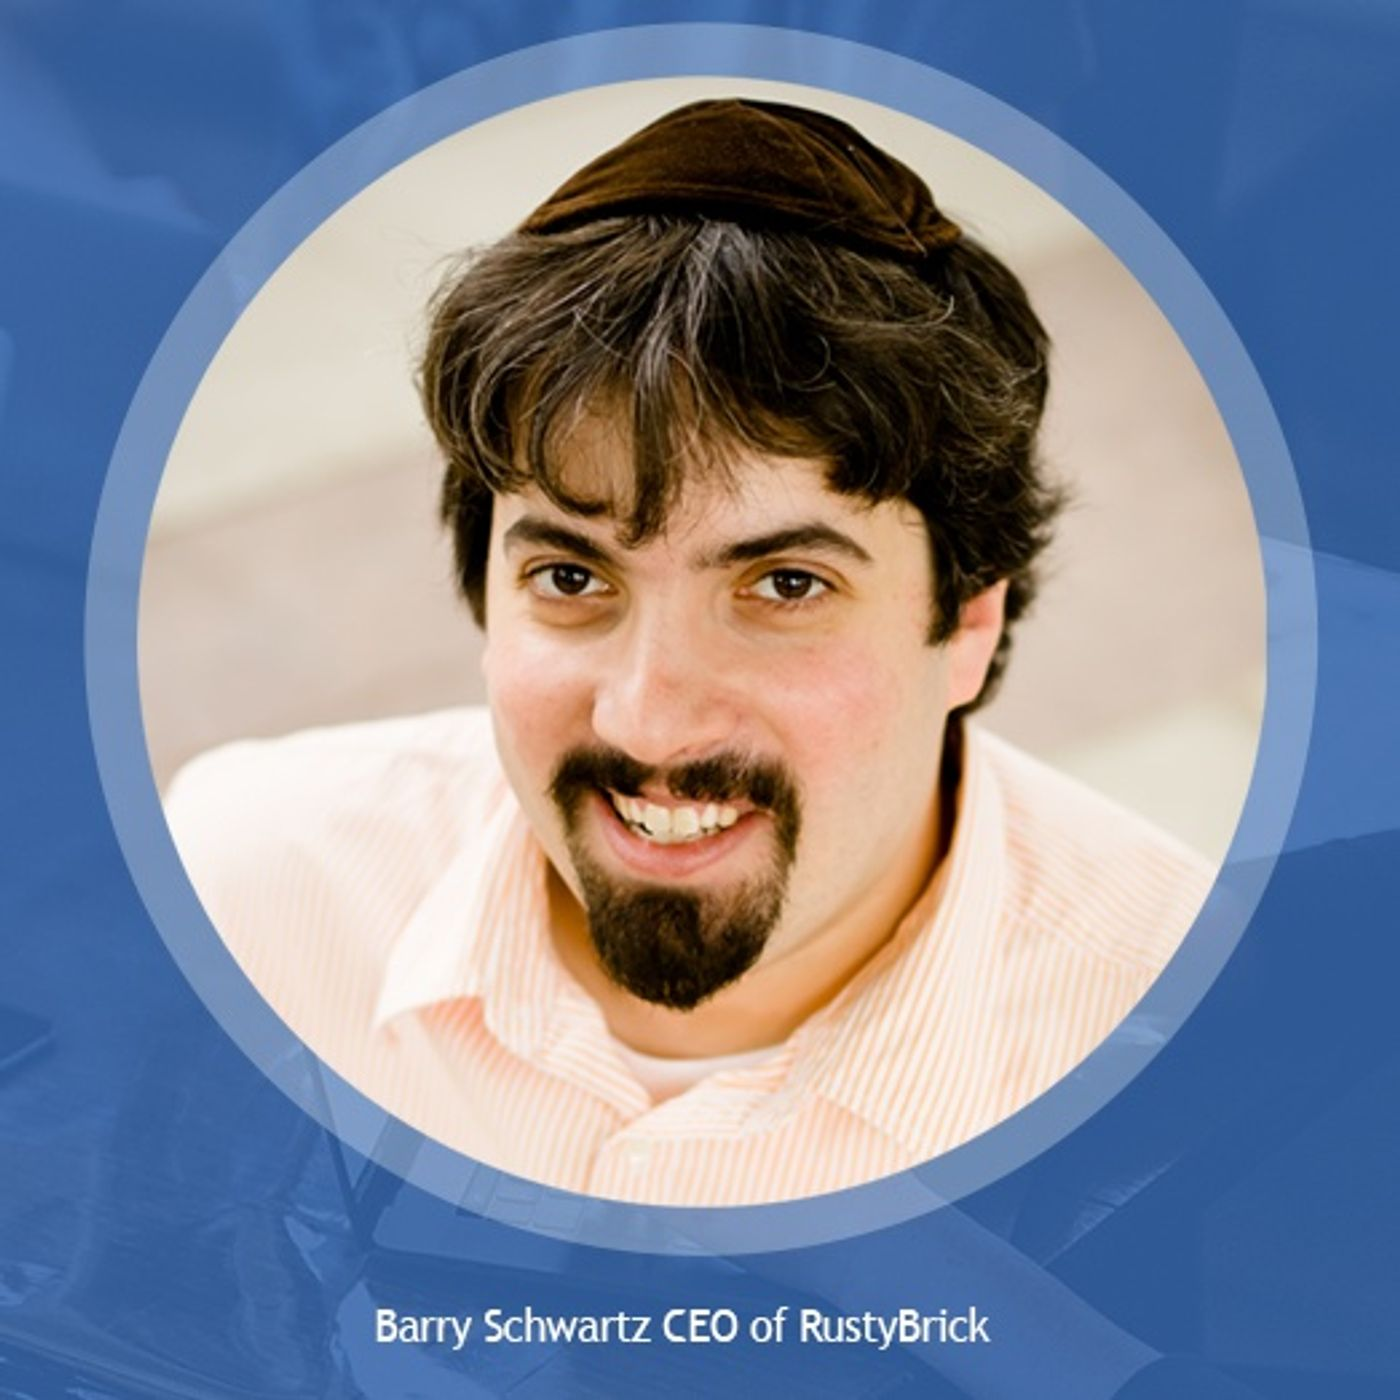 SEO Industry in 2020 with Barry Schwartz